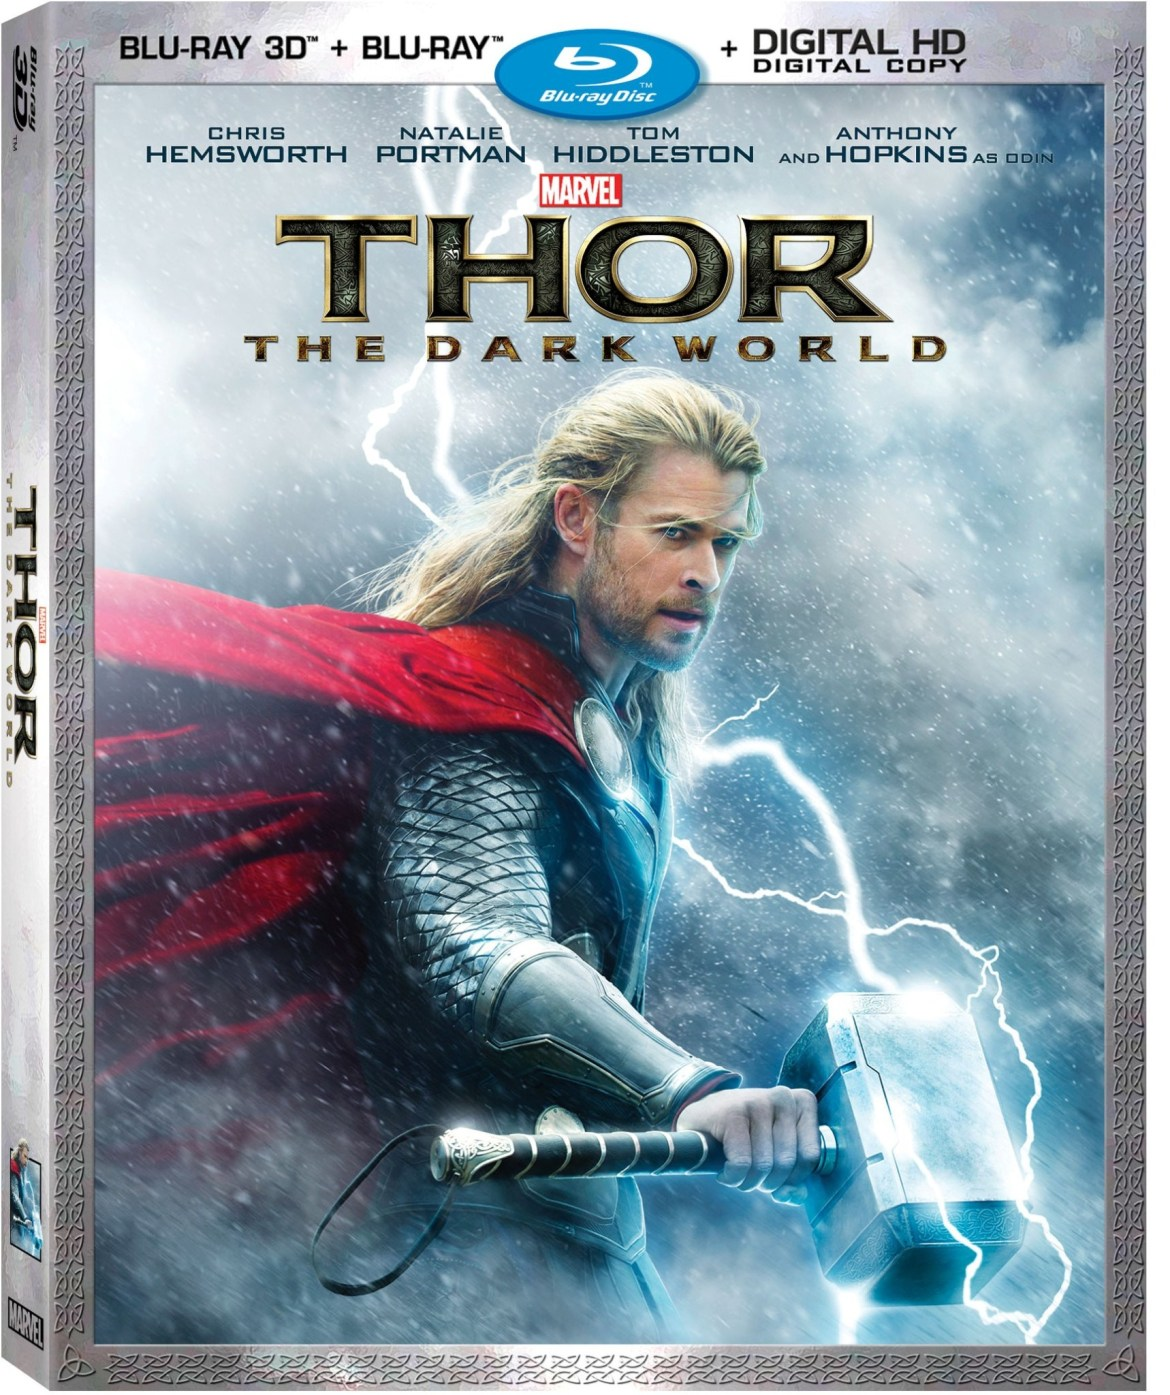 'Thor: The Dark World' Comes to Blu-ray February 25, 2014